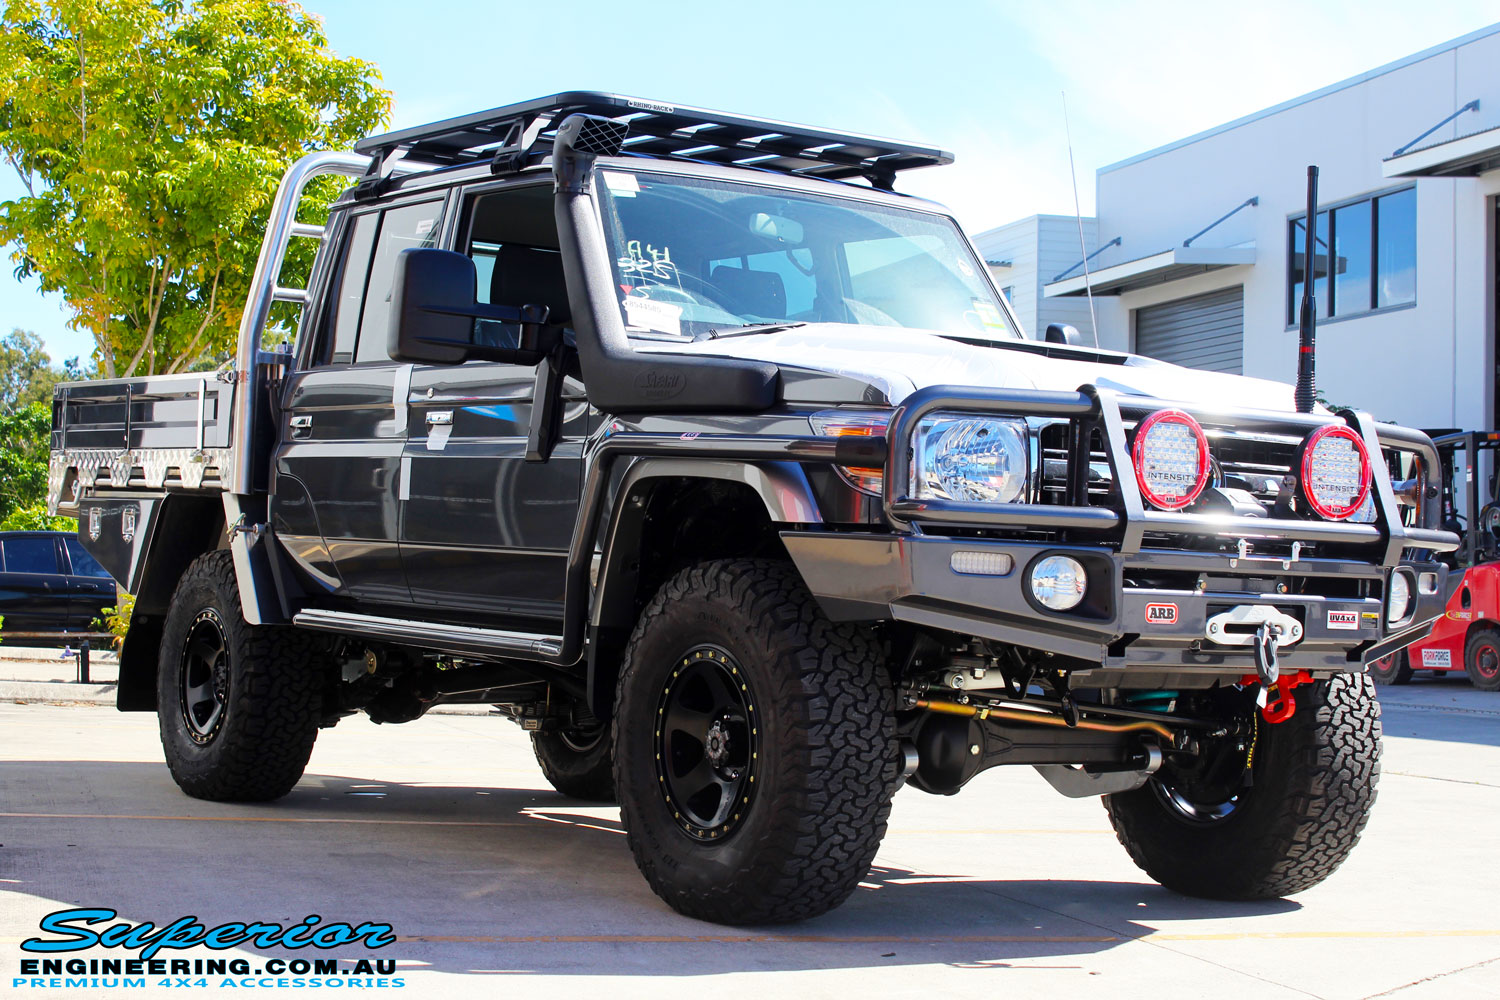 "Right front side view of a Grey Toyota 79 Series Landcruiser Dual Cab after fitment of a Superior 3"" Inch Nitro Gas Lift Kit, Airbag Man Digital Dual Air Control Kit w/Tyre Inflation & Leaf 3"" Inch Air Lift Kit"